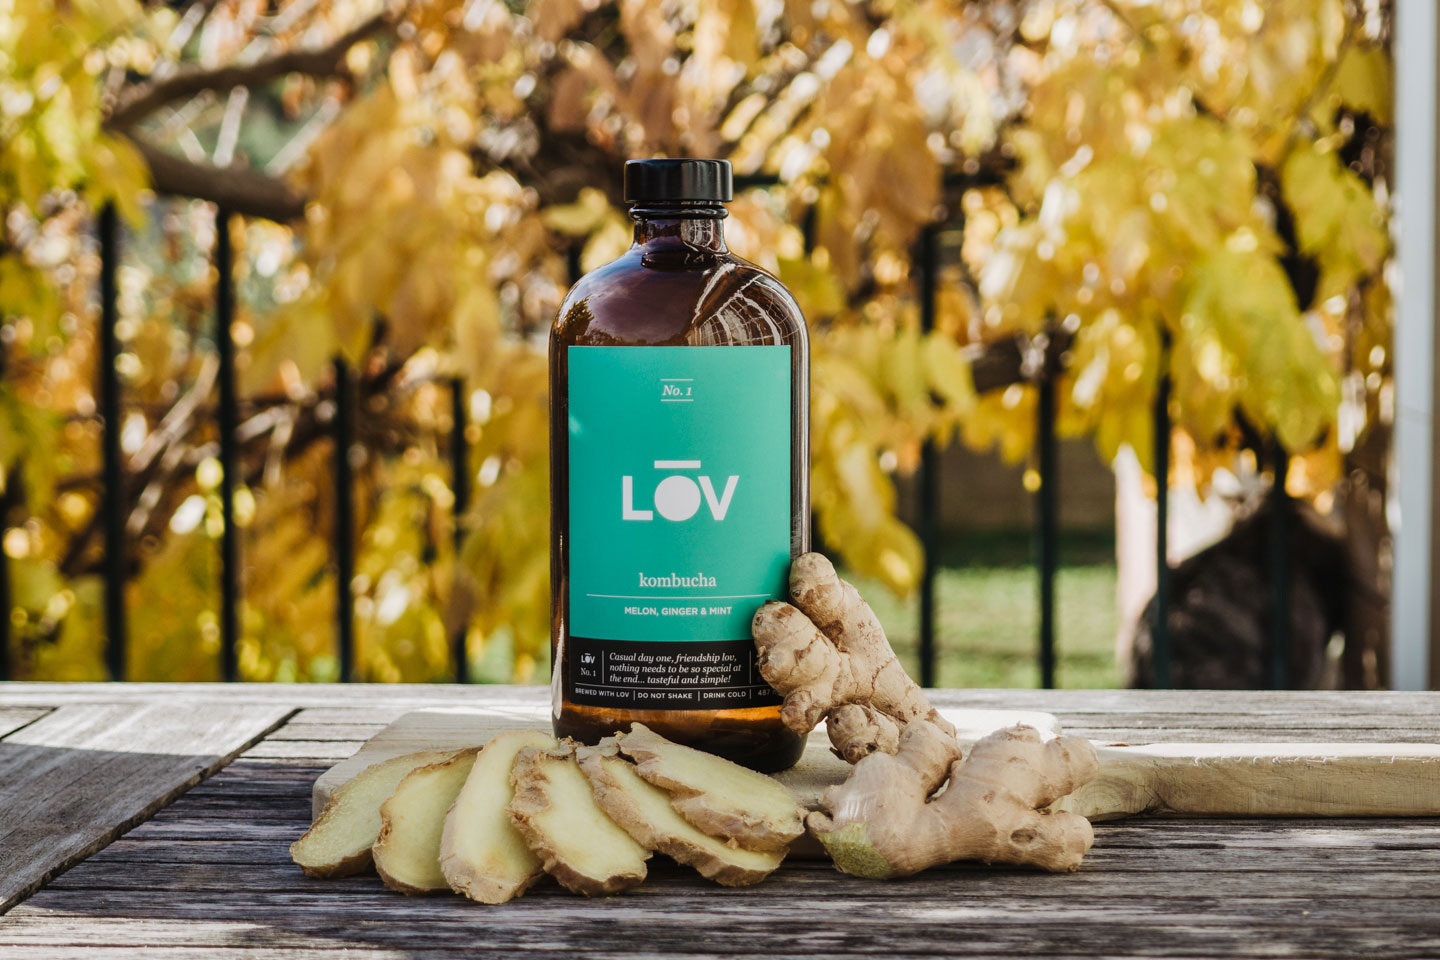 LOV No.1 - Closer Look To Fresh Ginger